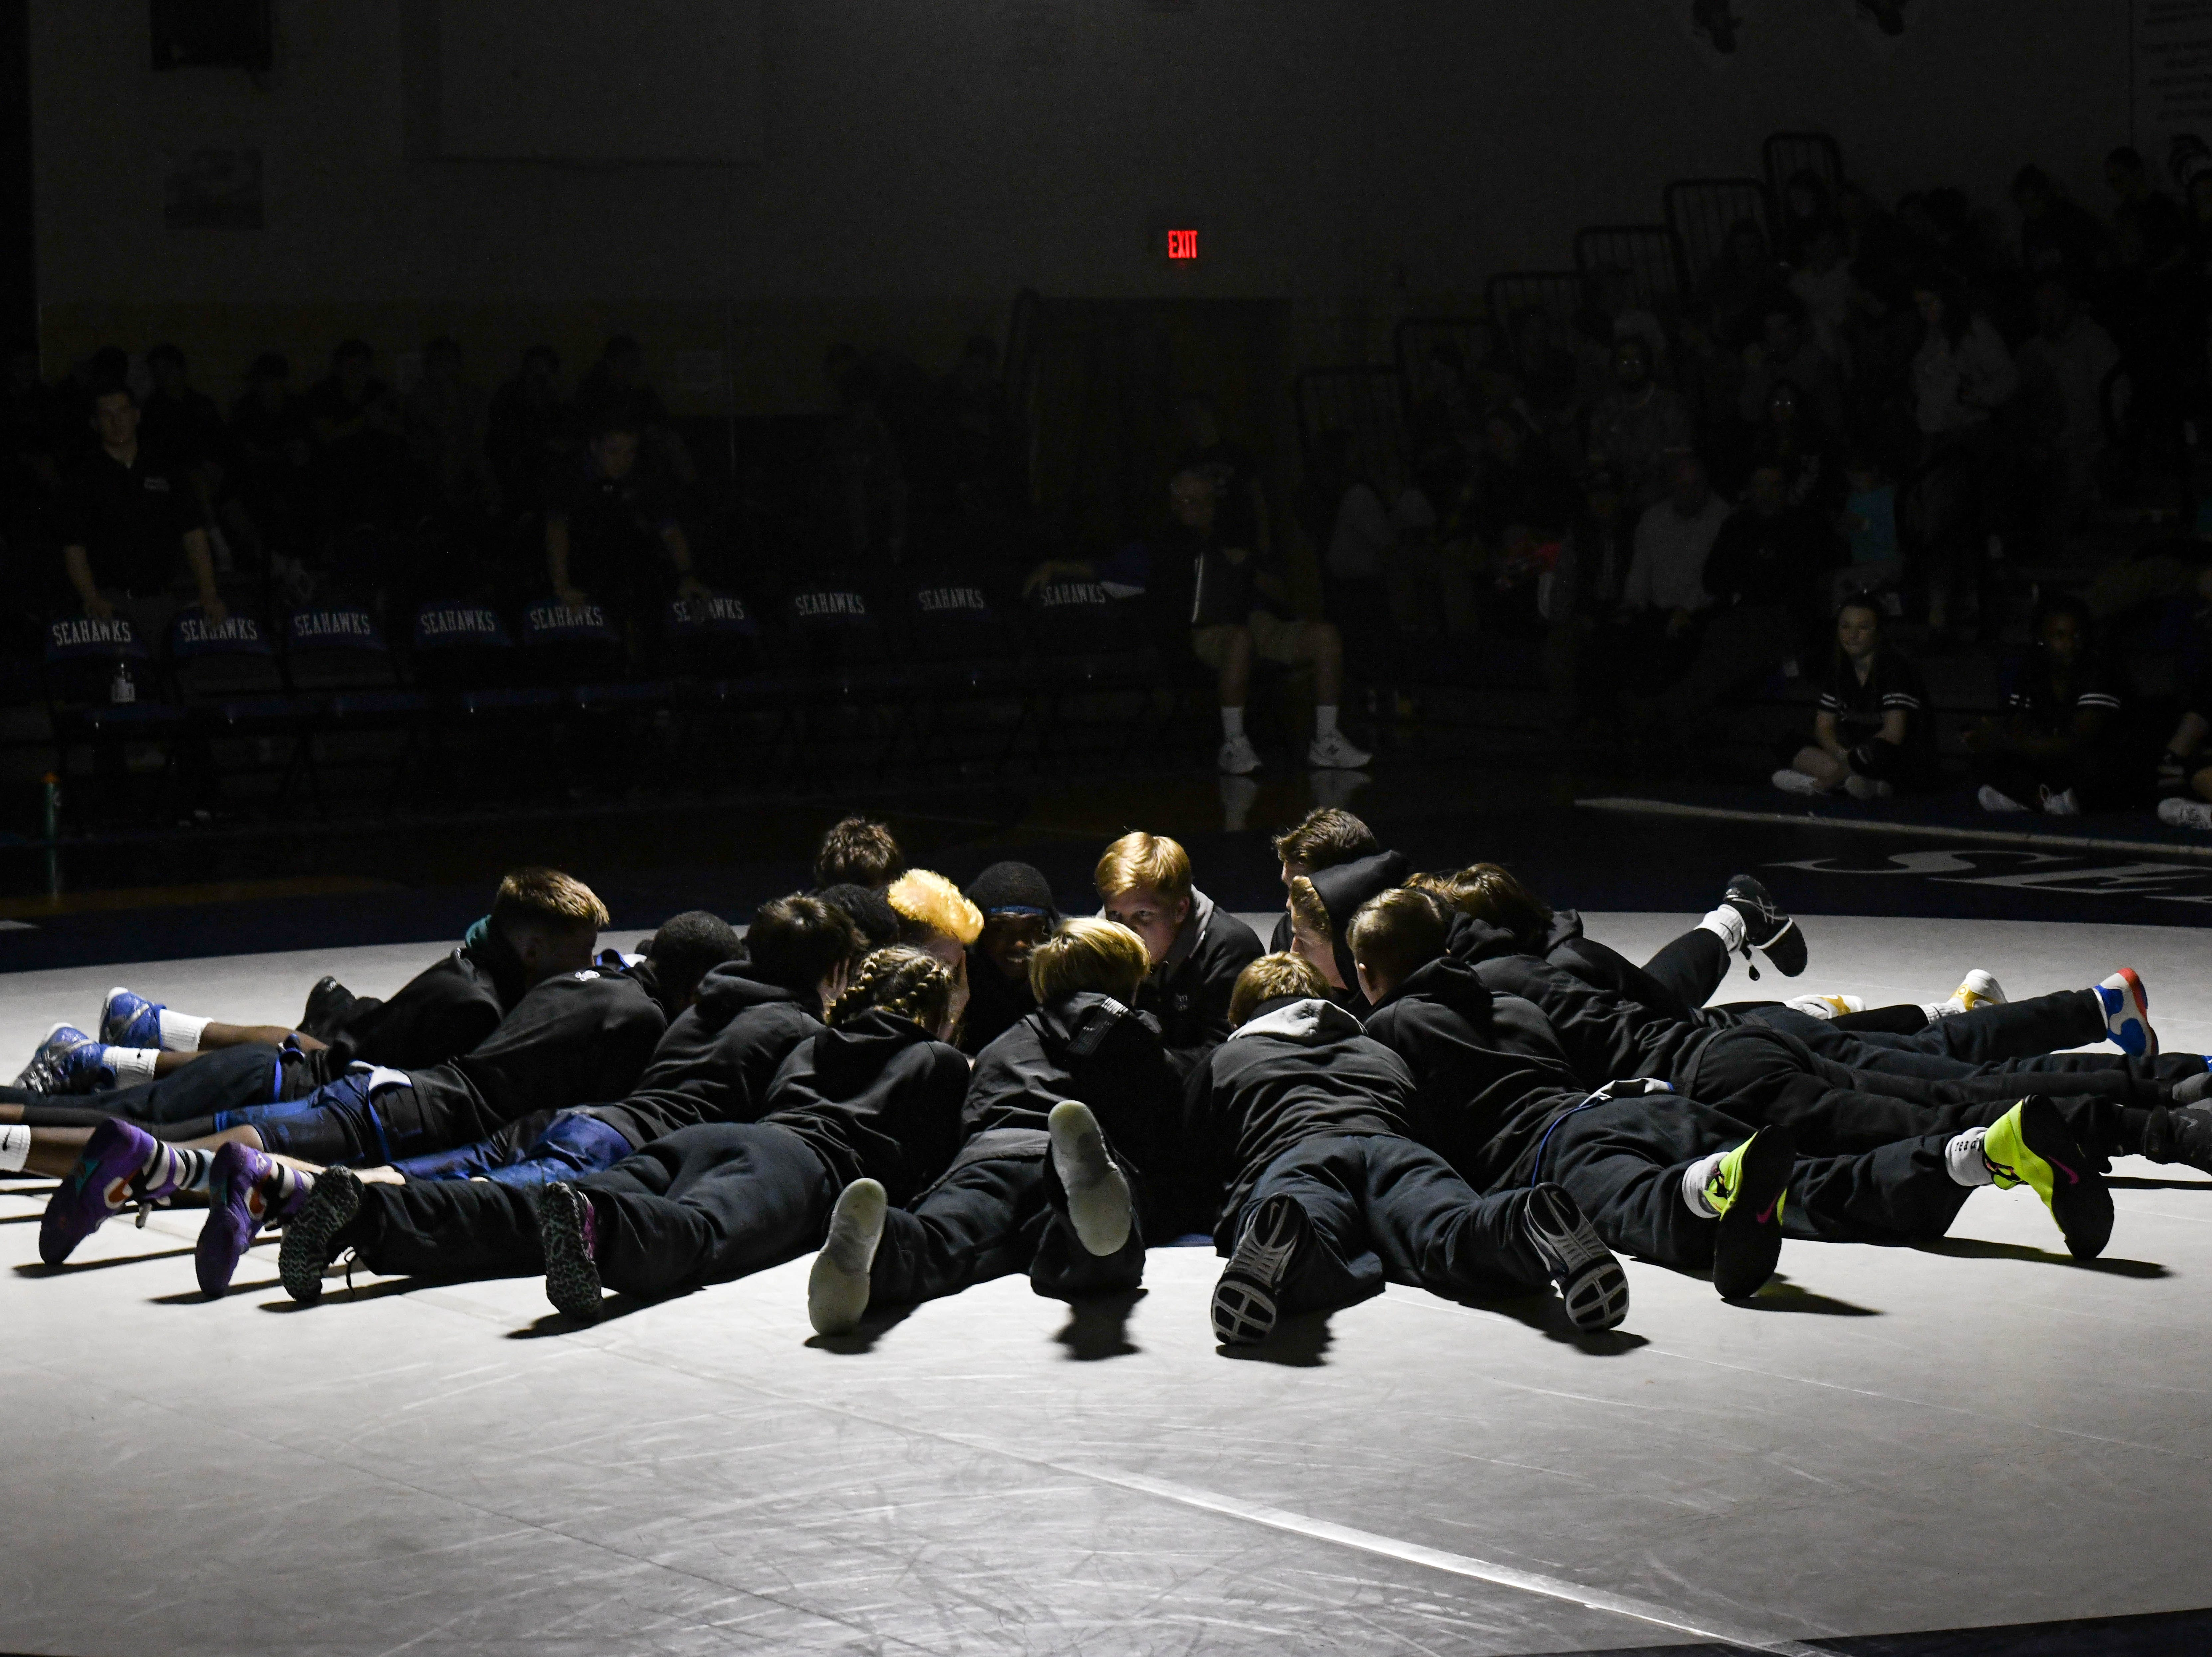 Stephen Decatur wrestlers warm up before a match against  Parkside at Stephen Decatur High School on Wednesday, Jan. 23, 2019.